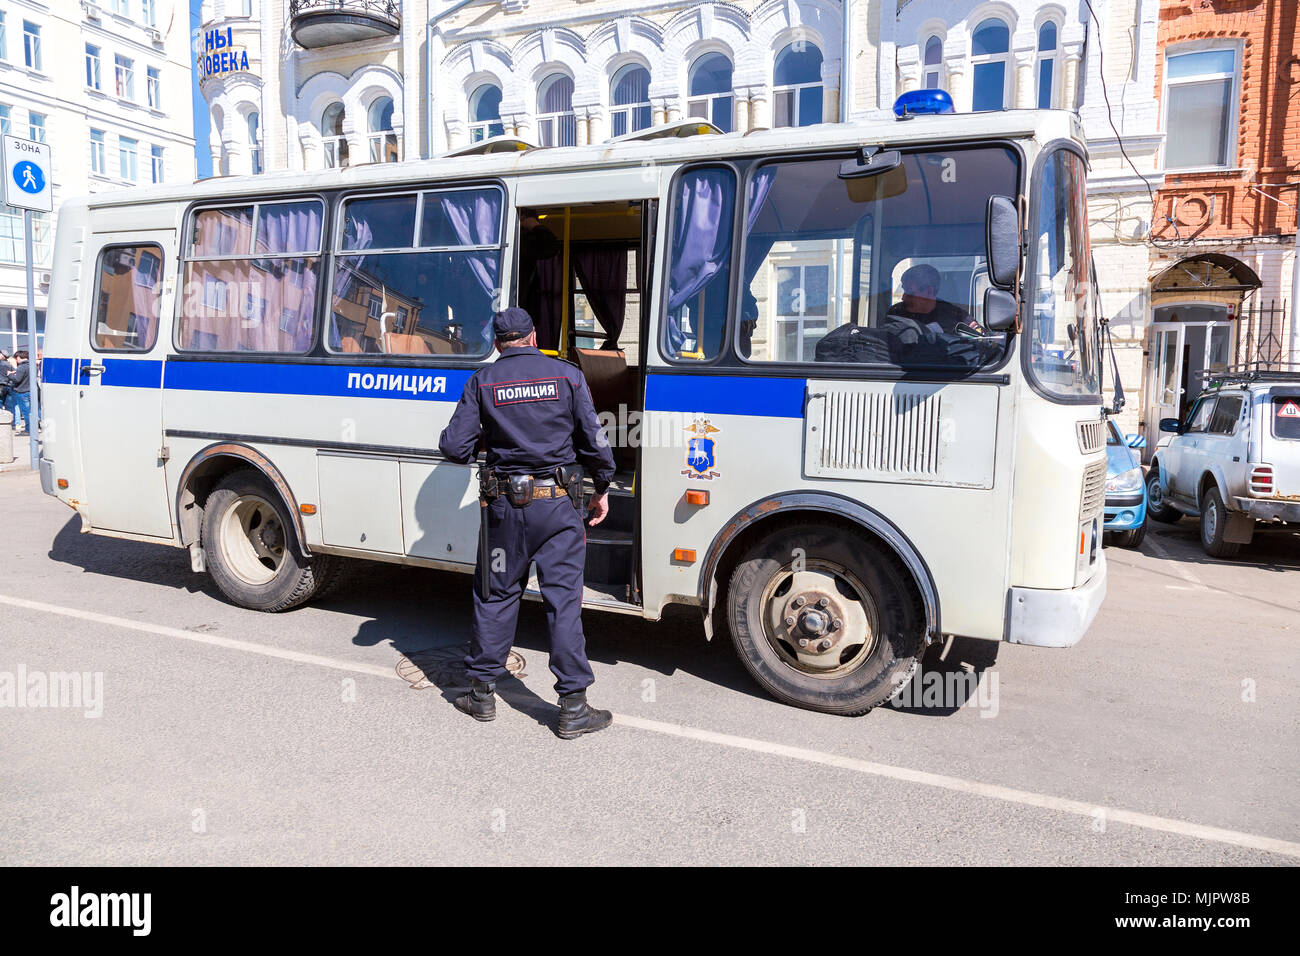 Samara, Russia - May 5, 2018: Police bus for arrested protesters during an opposition rally ahead of President Vladimir Putin's inauguration ceremony Credit: Alexander Blinov/Alamy Live News - Stock Image